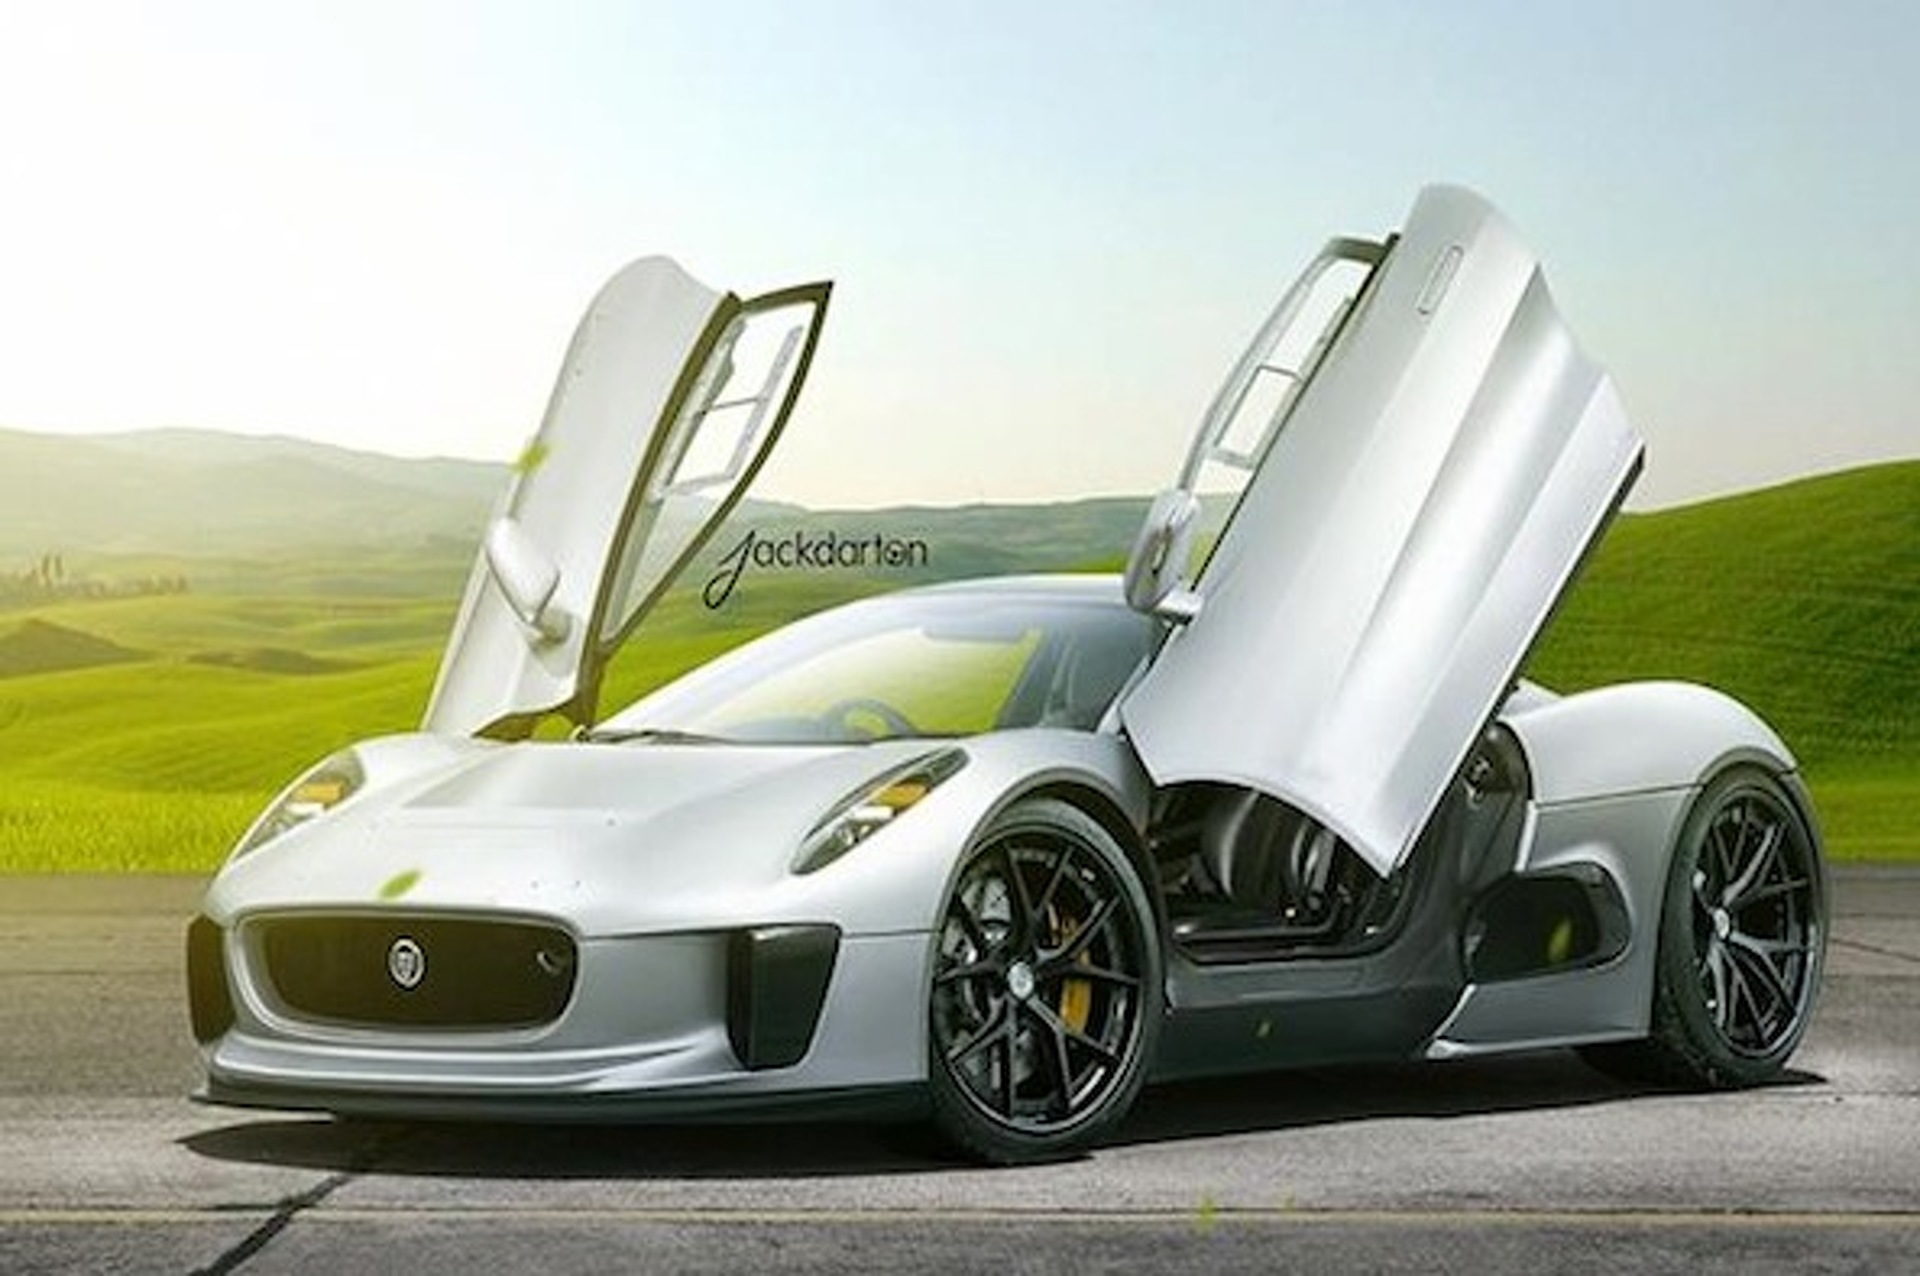 Jaguar C-X75 Gets Crafted Onto a Set of HRE Wheels